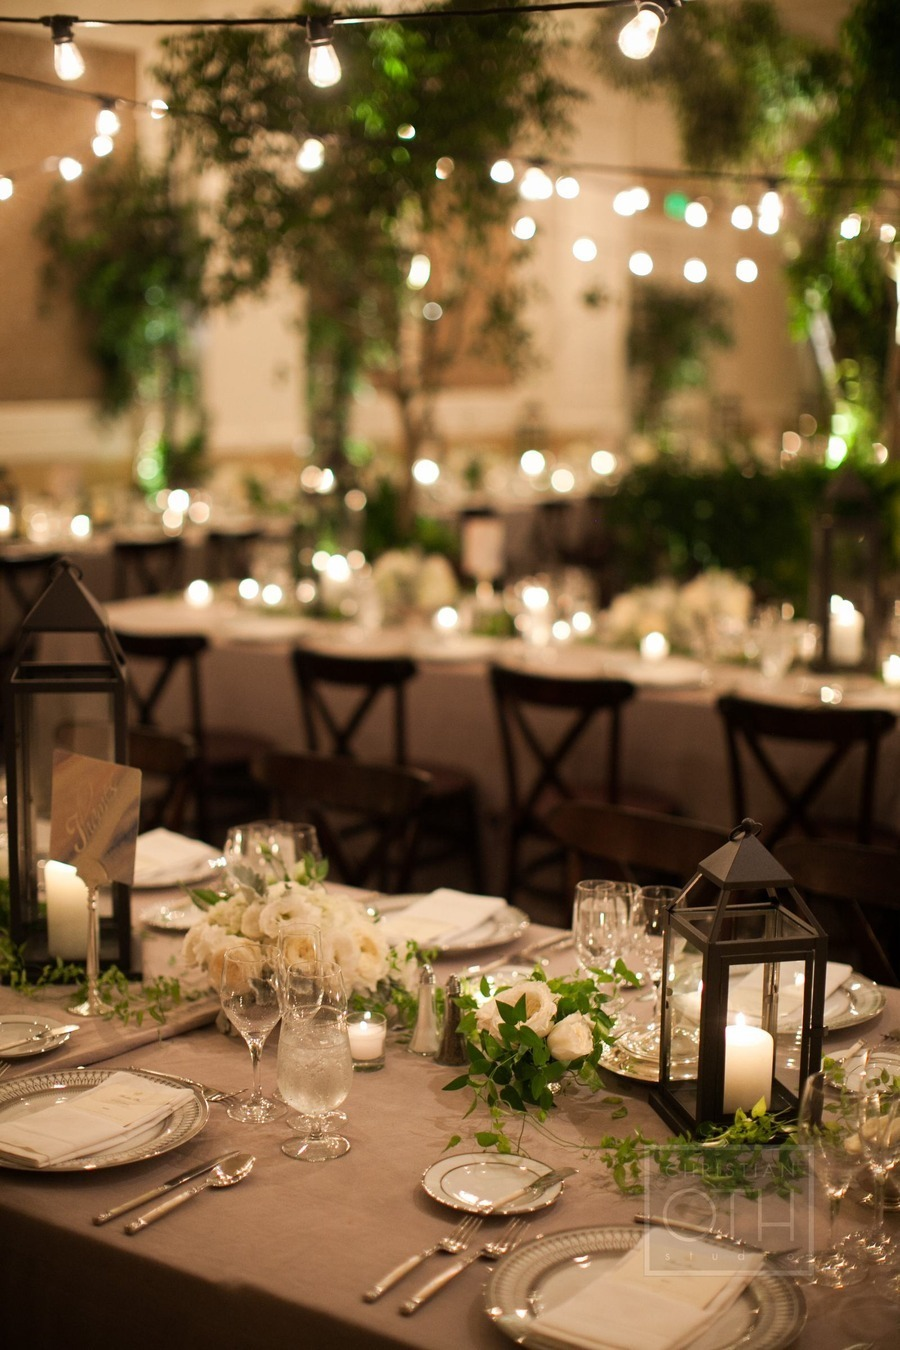 Wedding centerpieces extravagant or simple - Decoration table champetre jardin la rochelle ...